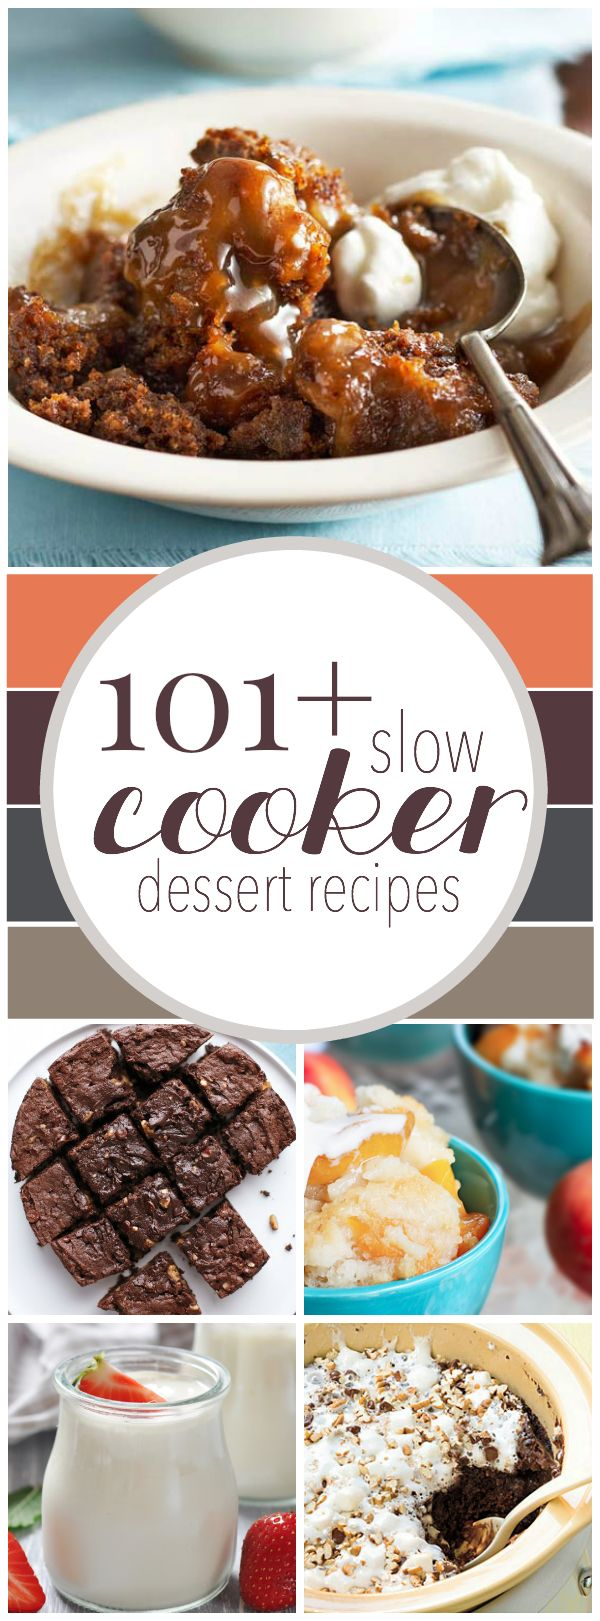 220 best crock pot dessert recipes images on pinterest casserole 220 best crock pot dessert recipes images on pinterest casserole recipes crock pot recipes and healthy slow cooker forumfinder Images